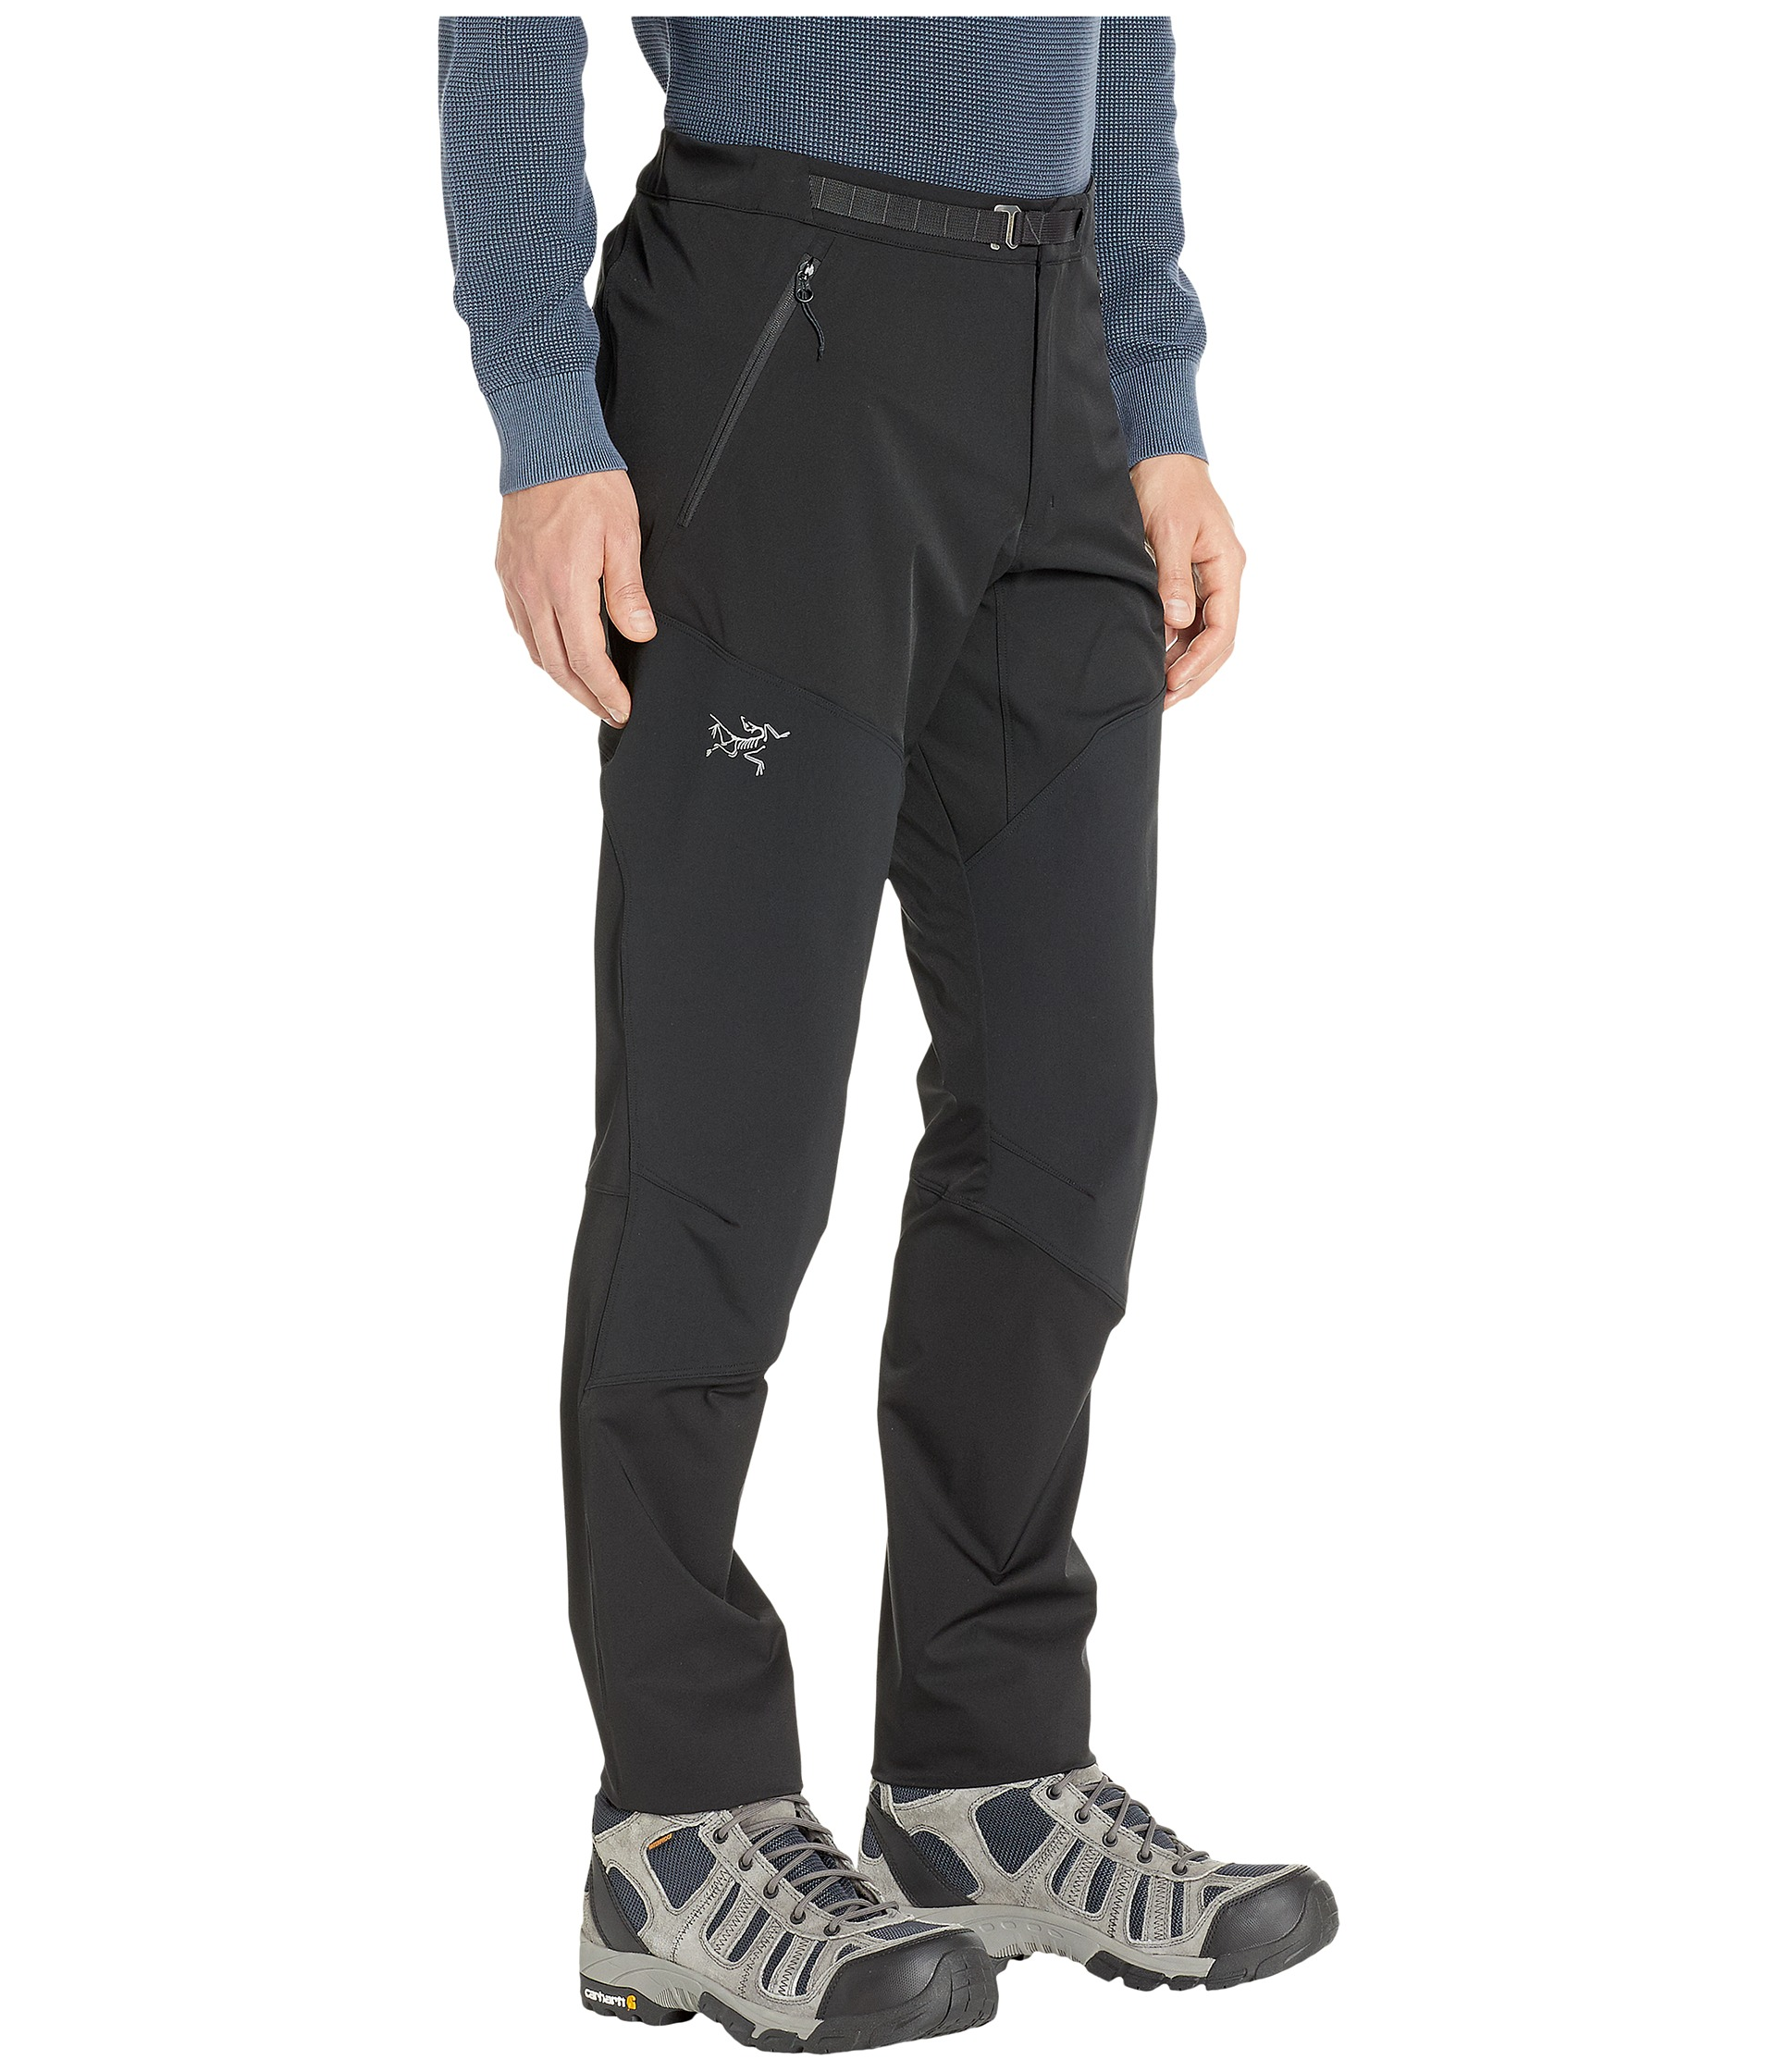 Arc'teryx Gamma Rock Pant - Zappos.com Free Shipping BOTH Ways